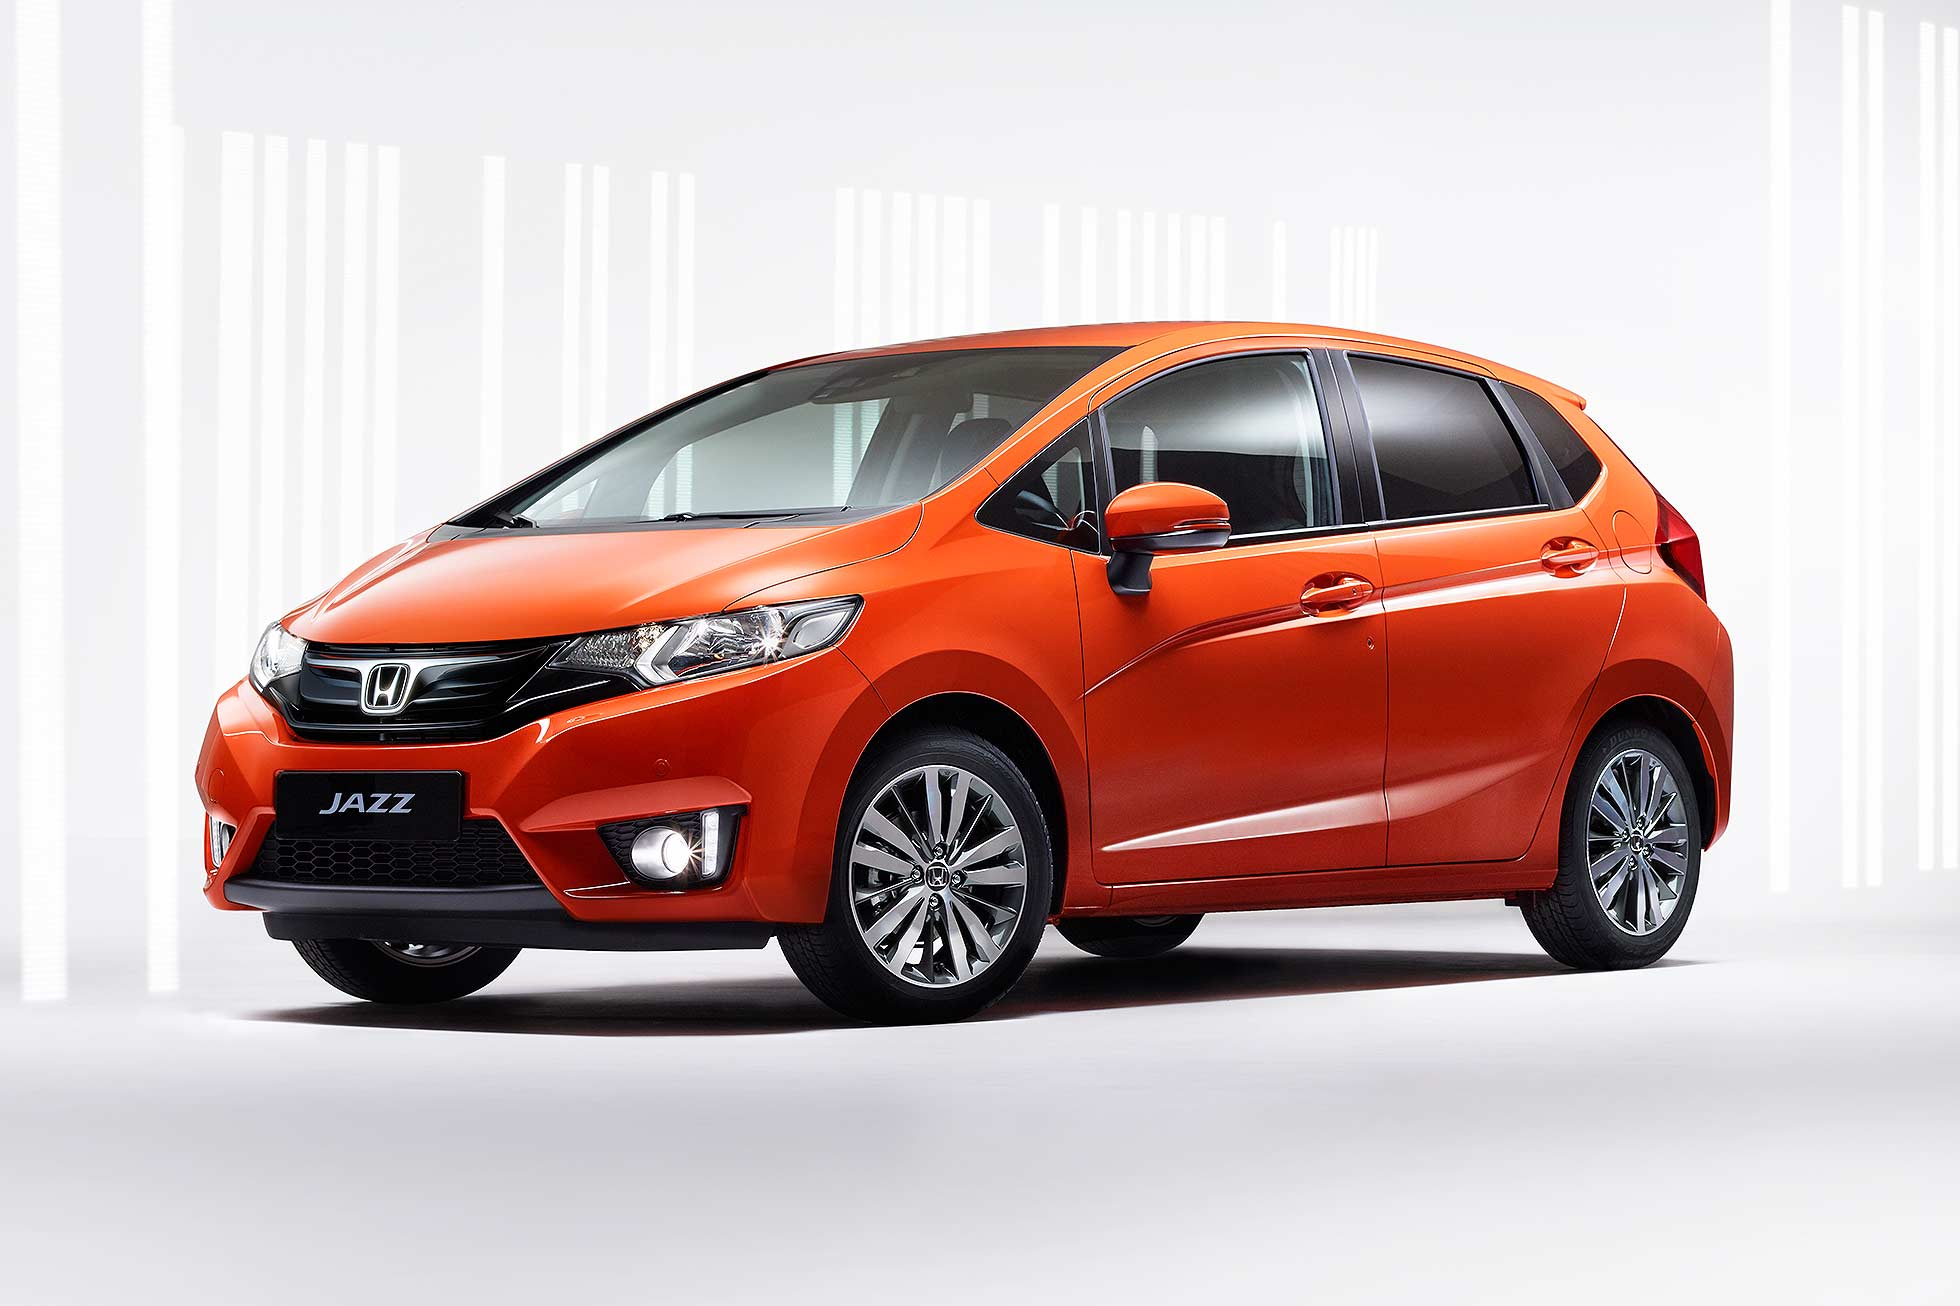 Honda Will Showcase The All New Jazz Supermini At The 2015 Geneva Motor  Show Ahead Of Its UK Launch In Summer 2015.